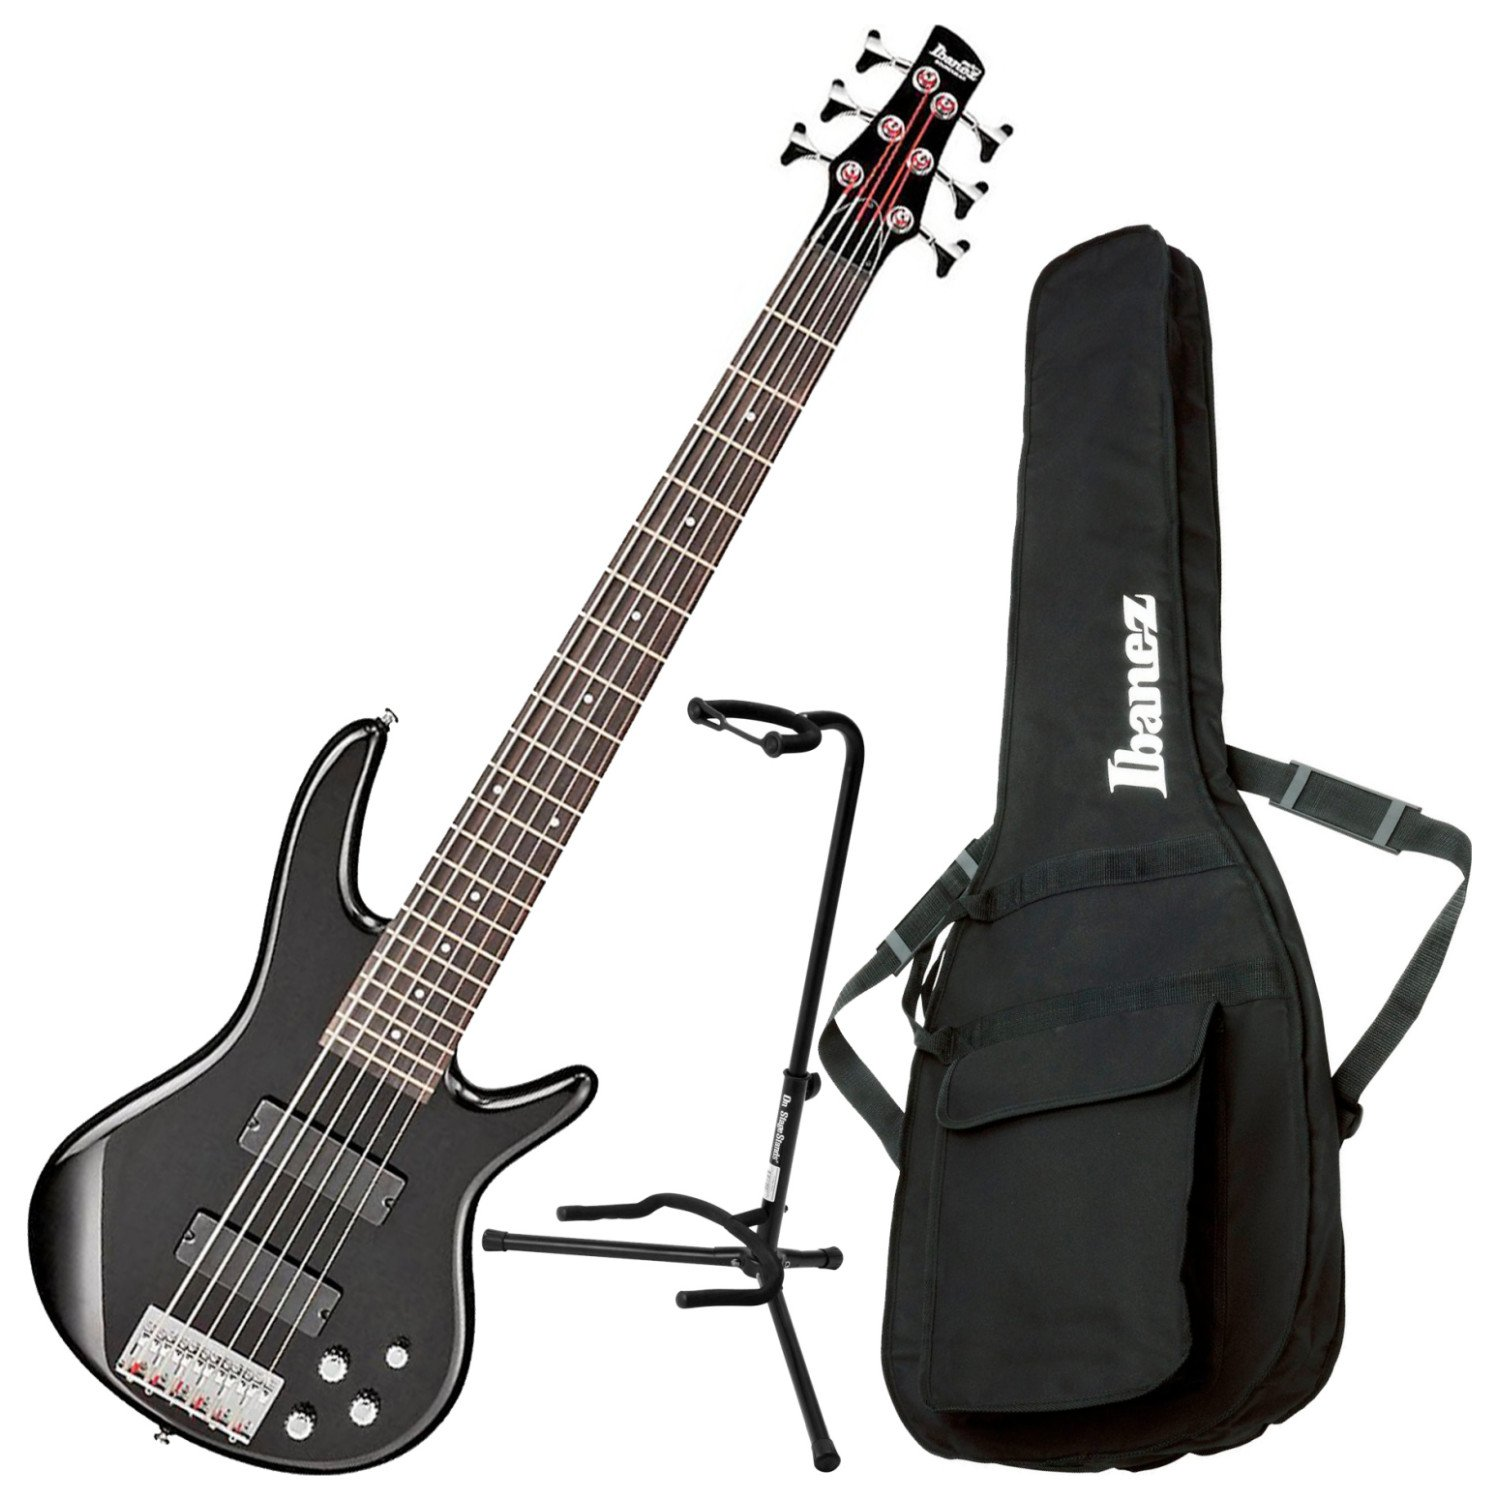 Ibanez GSR206 6 String Electric Bass Black w/ Gig Bag and Stand GSR206 BUNDLE